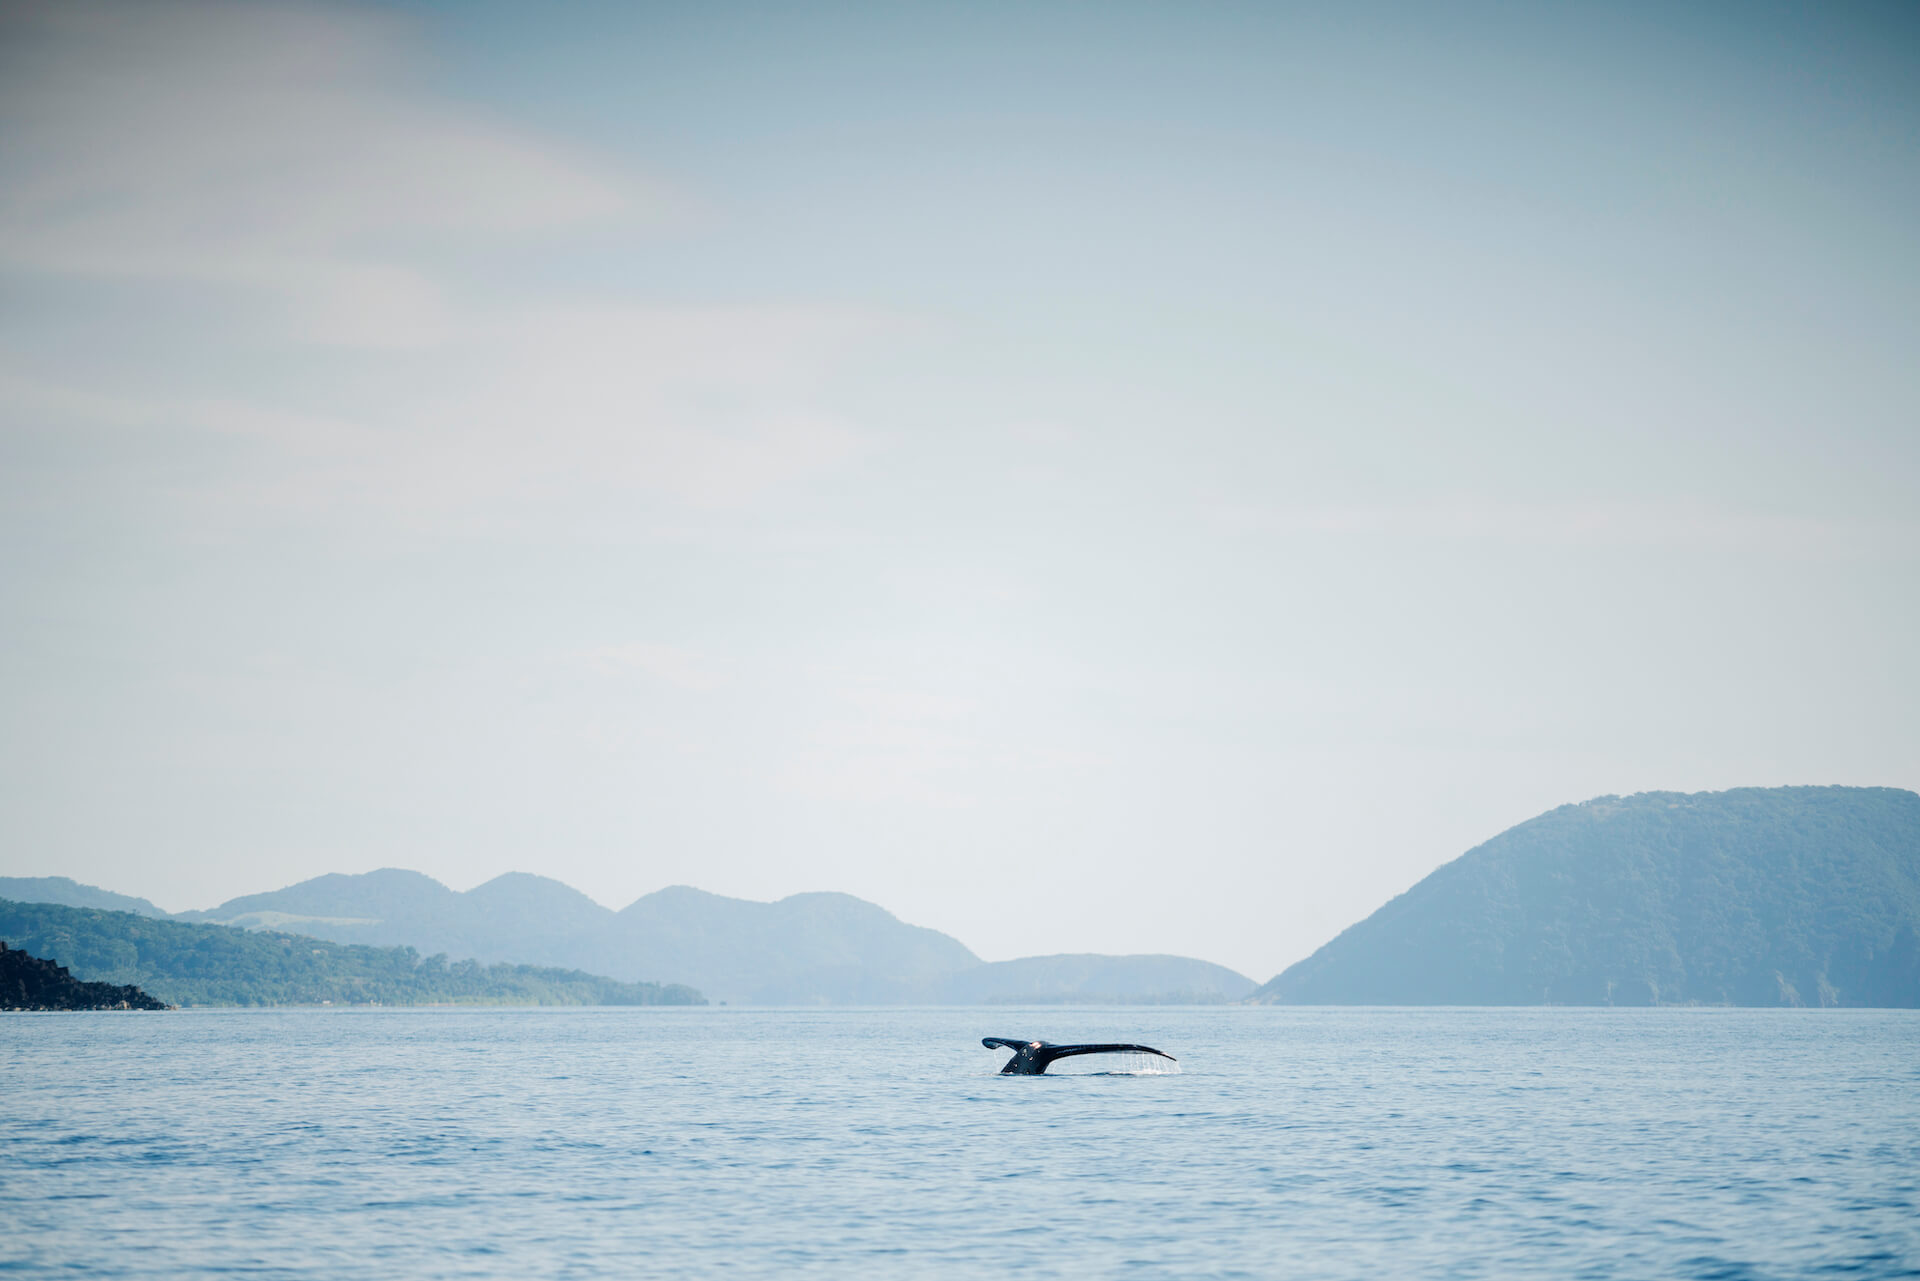 A humpback whale shows its fluke over the water